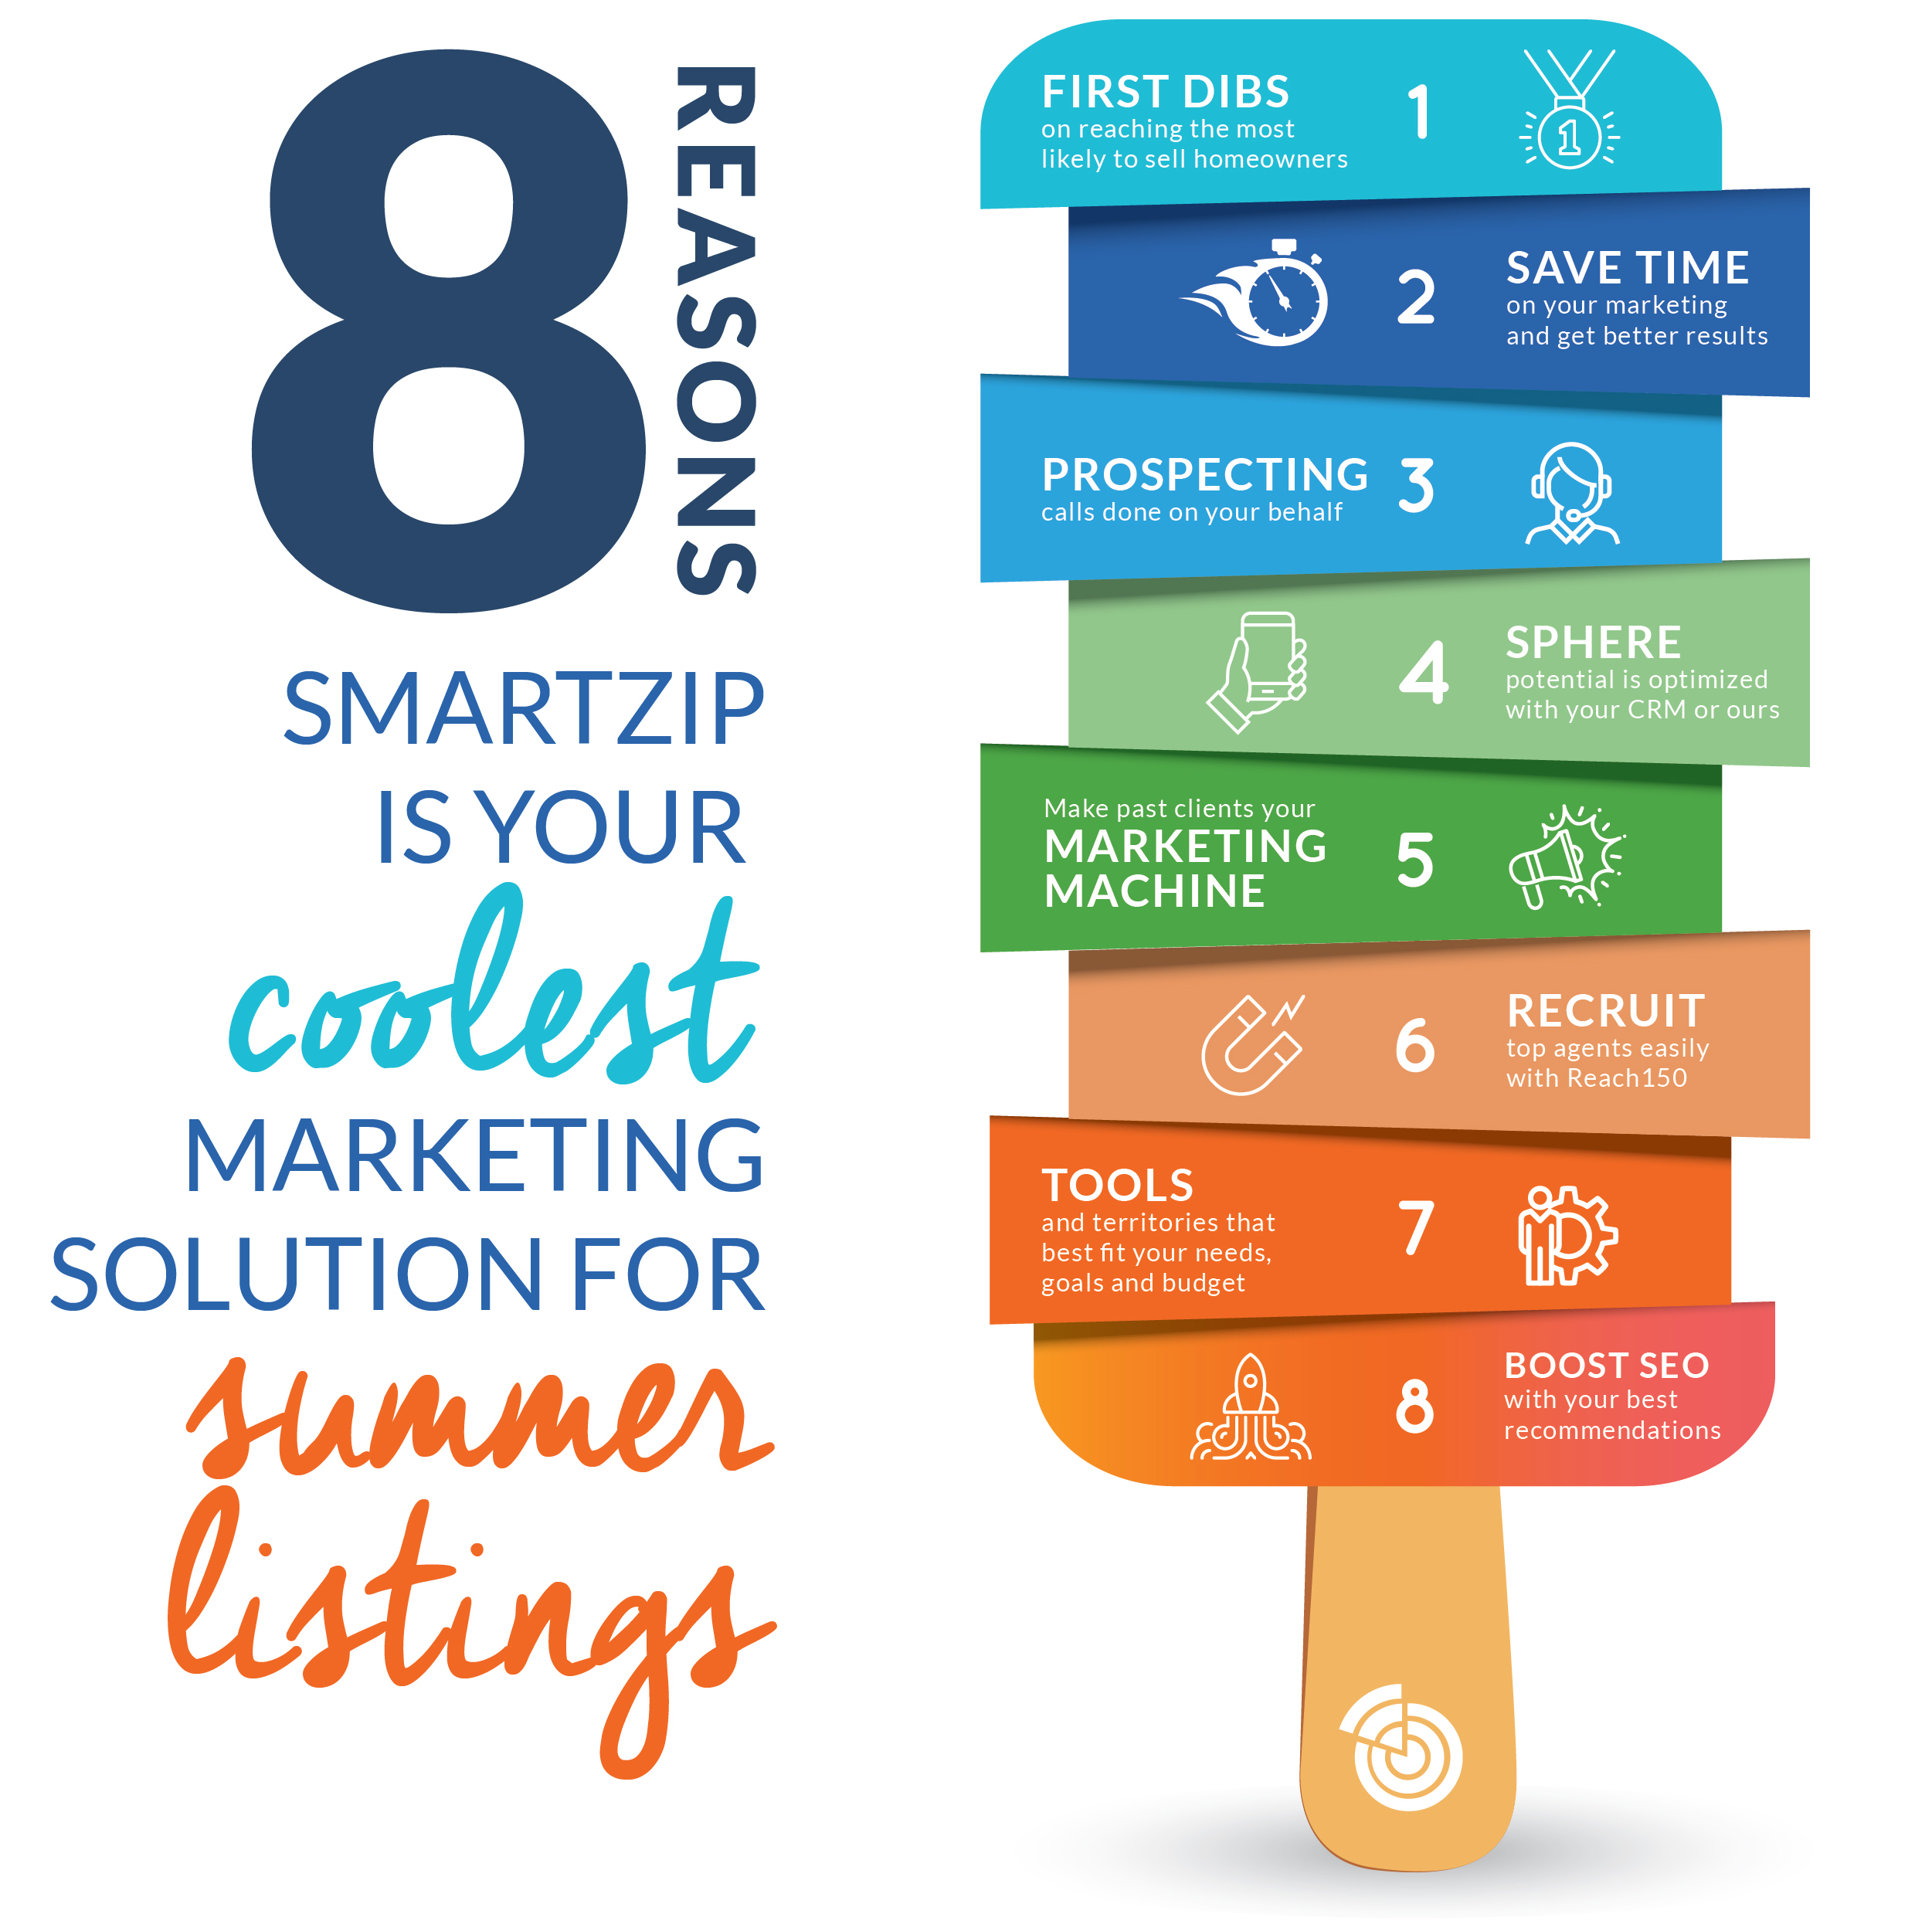 8 Reasons SmartZip is your best listing solution